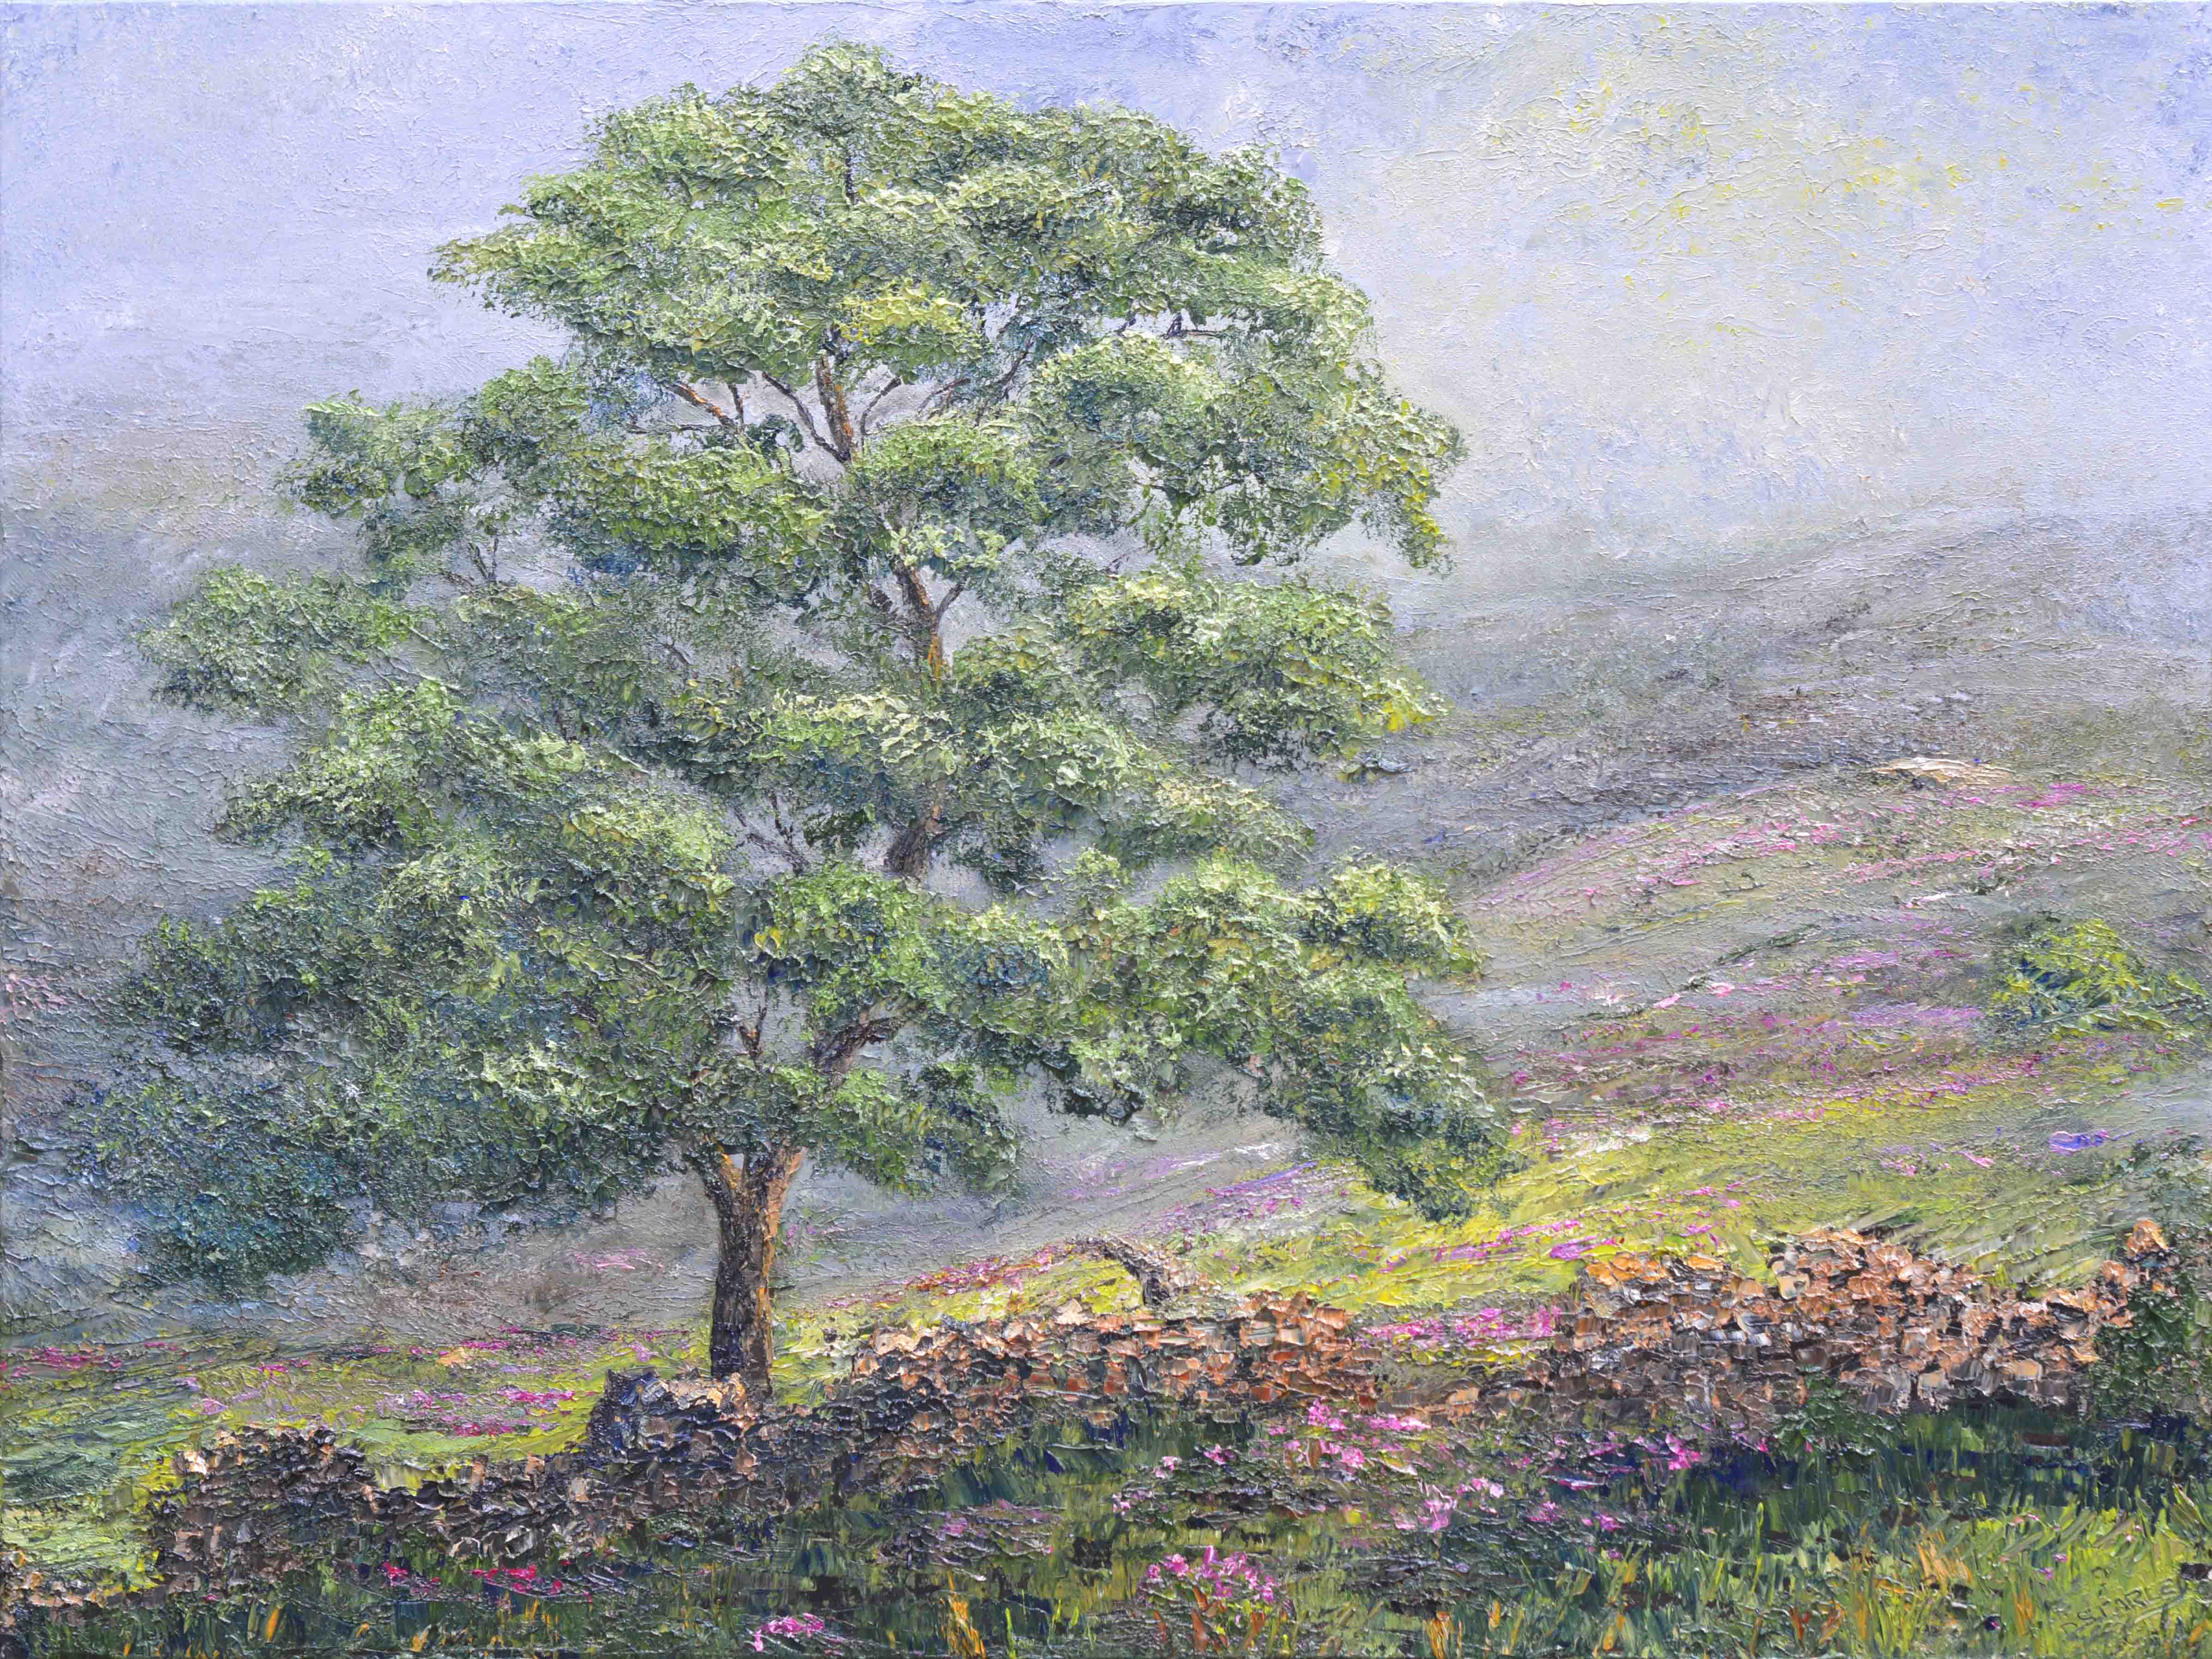 ds588-Haworth-Moor-Sycamore-40x30in-2020-MR-1